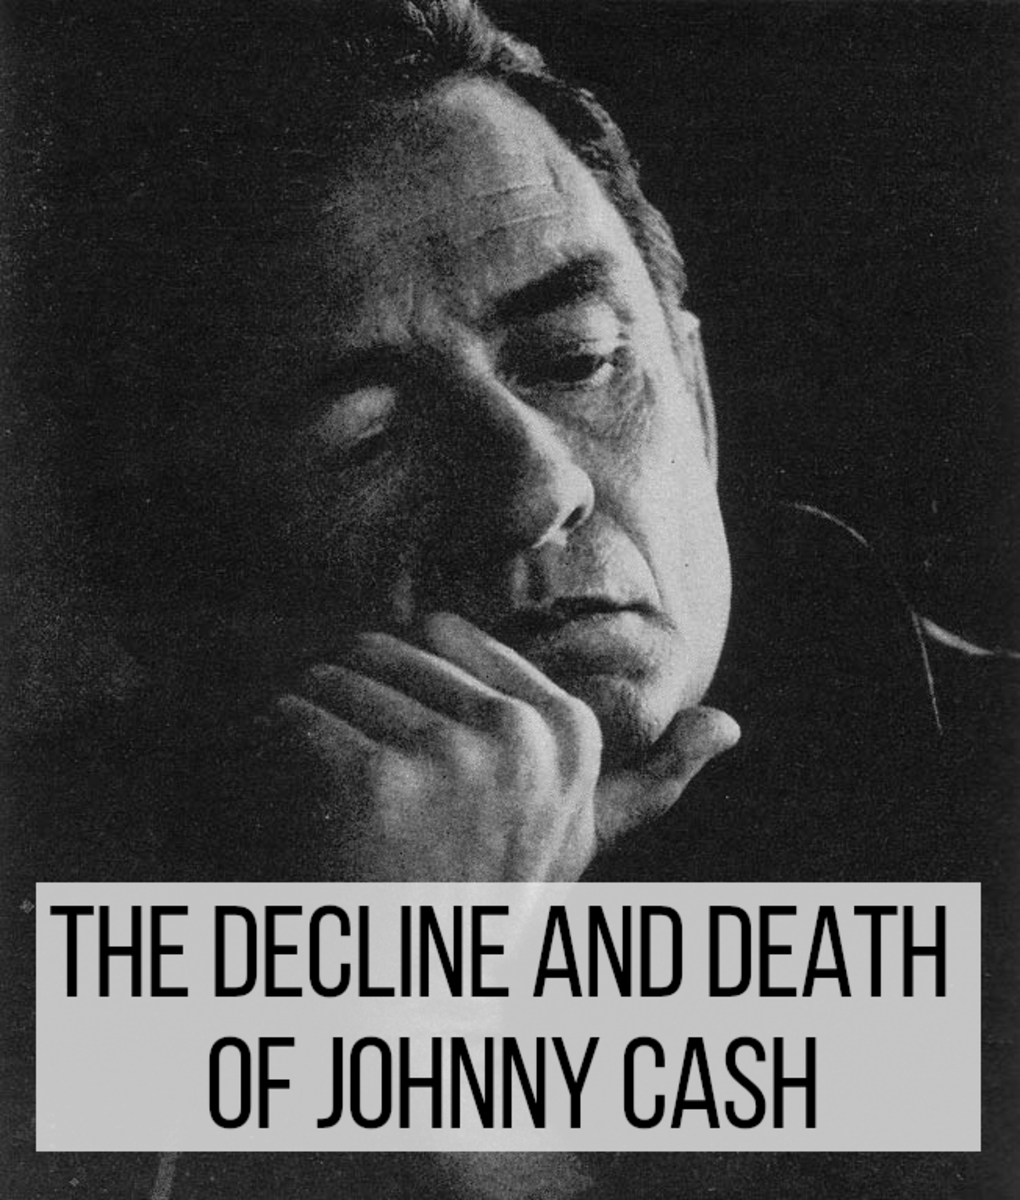 Cash was an icon of 20th century music.  His life was full of tribulations, however, both emotional and physical.  A combination of heartbreak and physical conditions would eventually lead to his death.